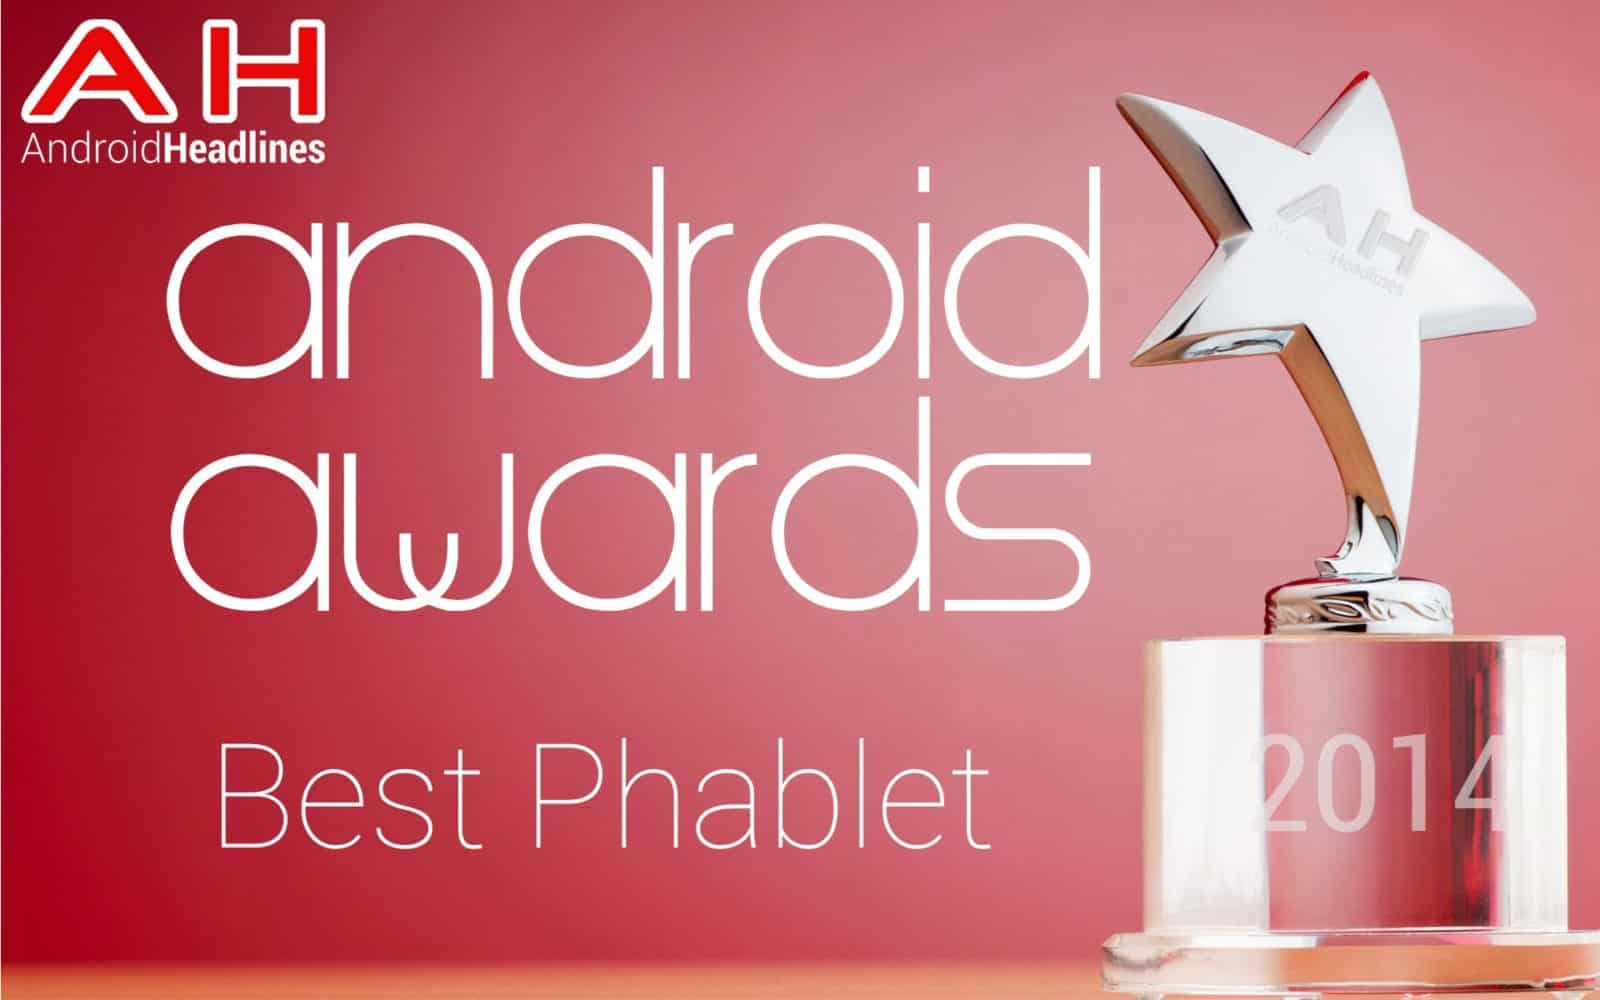 AH Awards 2014 - Best Phablet of the year